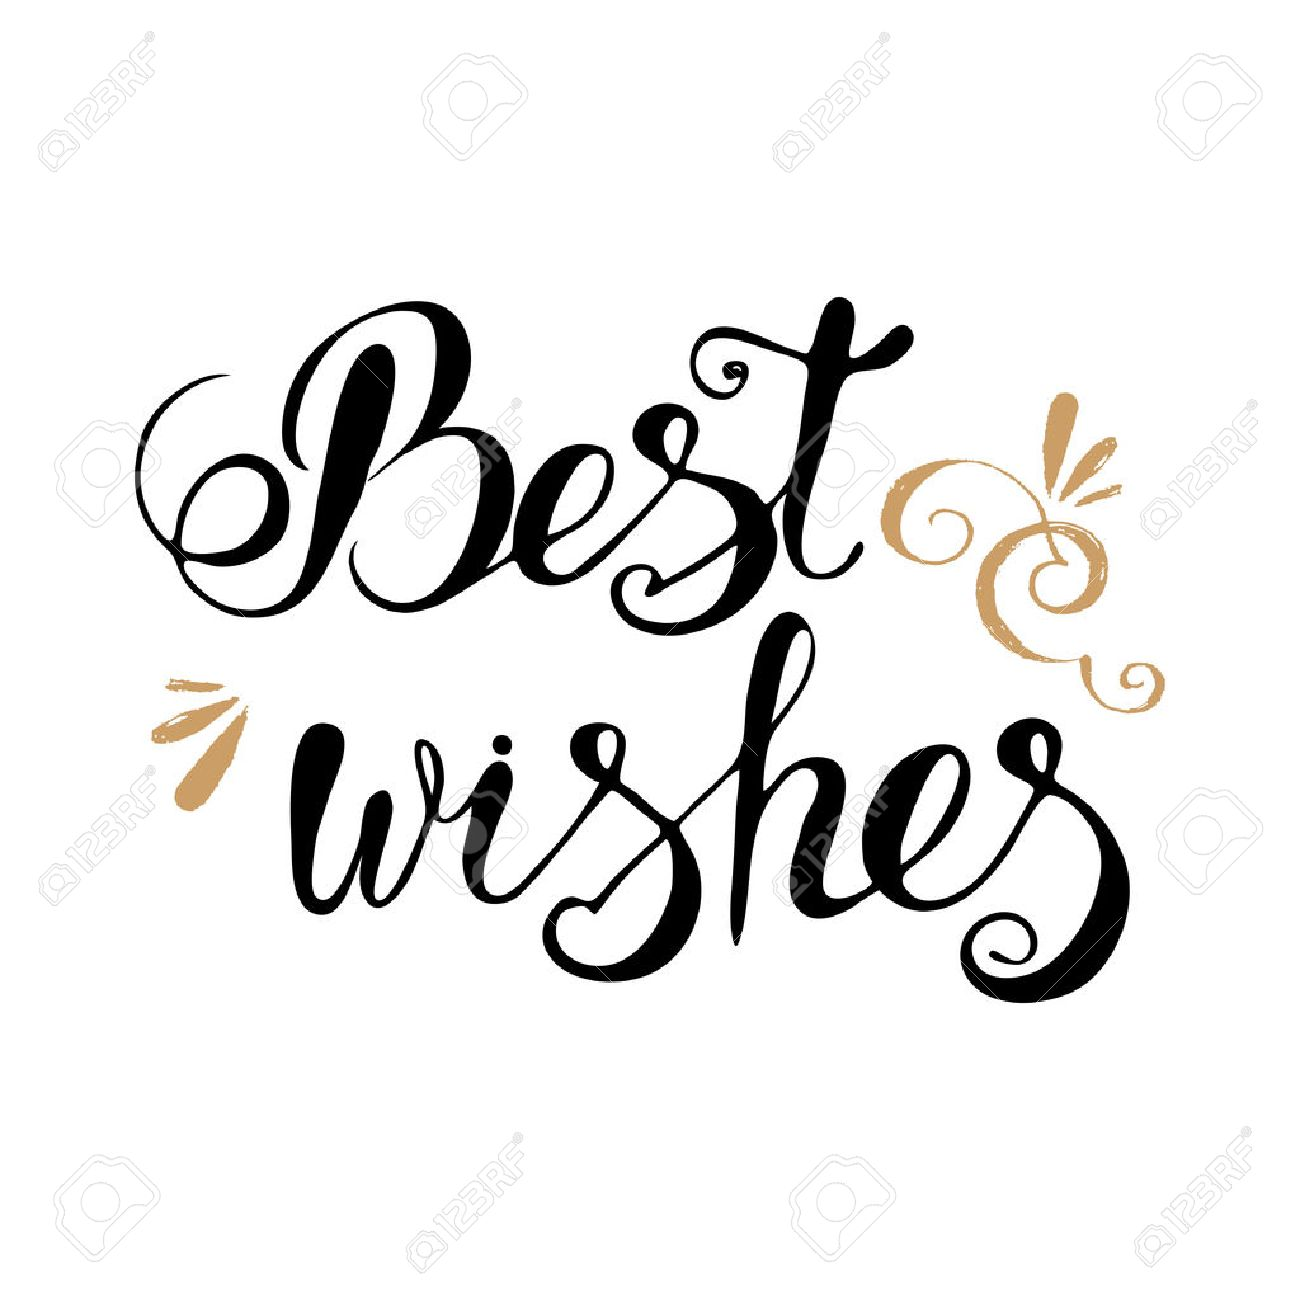 best wishes lettering typography clip art for cards royalty free rh 123rf com best clipart subscription sites best clip art images